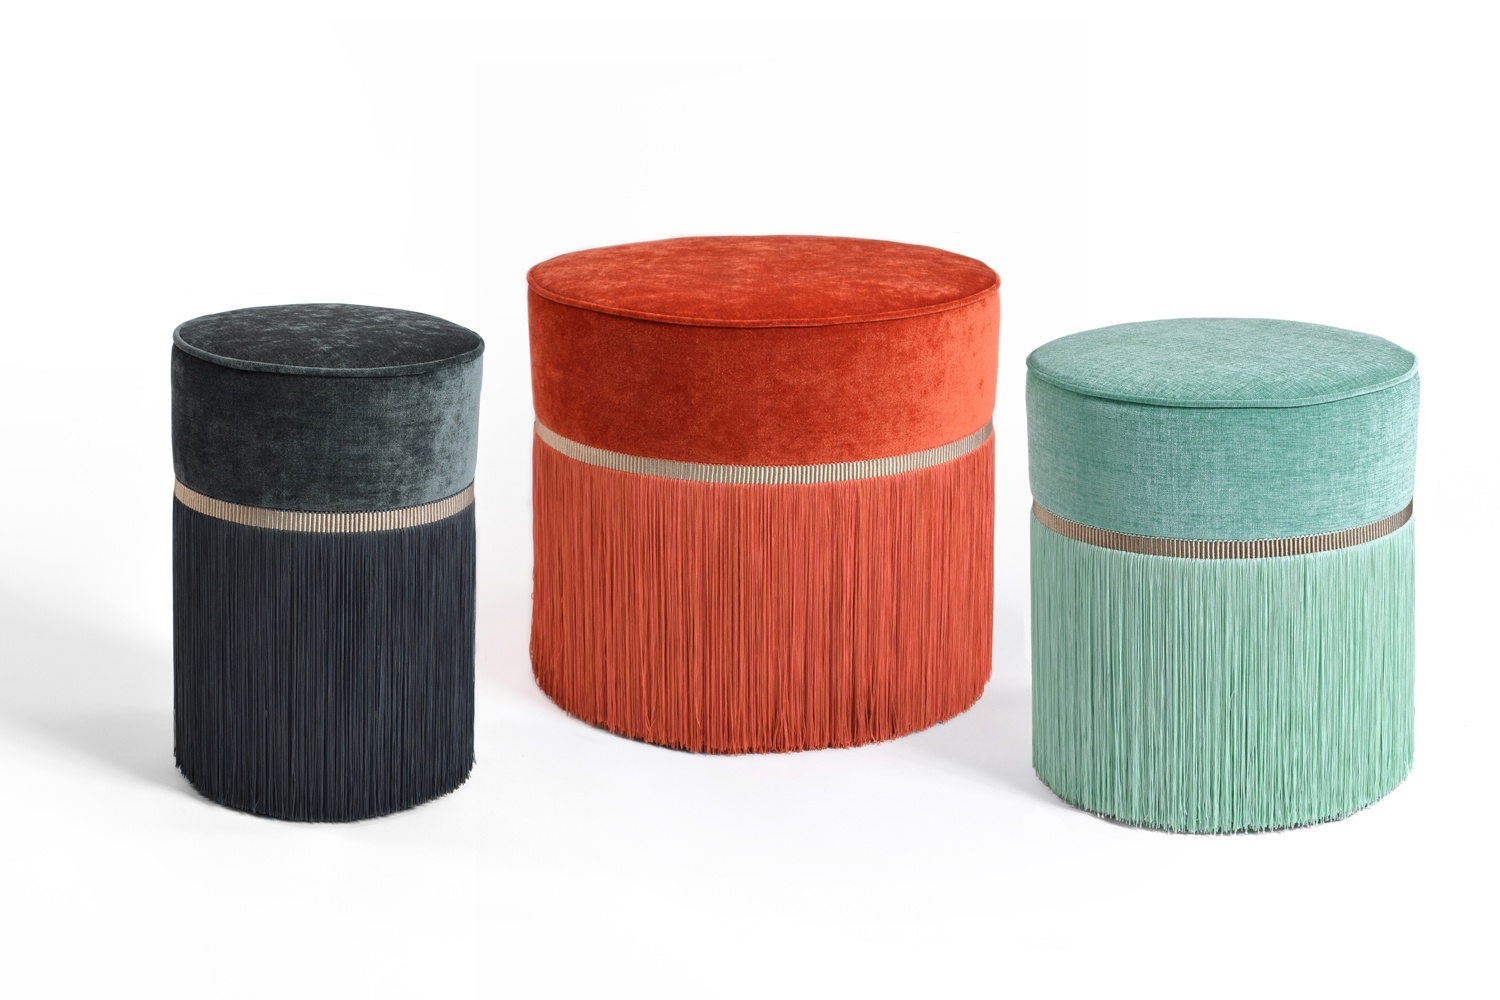 lorenza-bozzoli-presents-couture-pouf-for-luisa-via-roma-home-yellowtrace-07